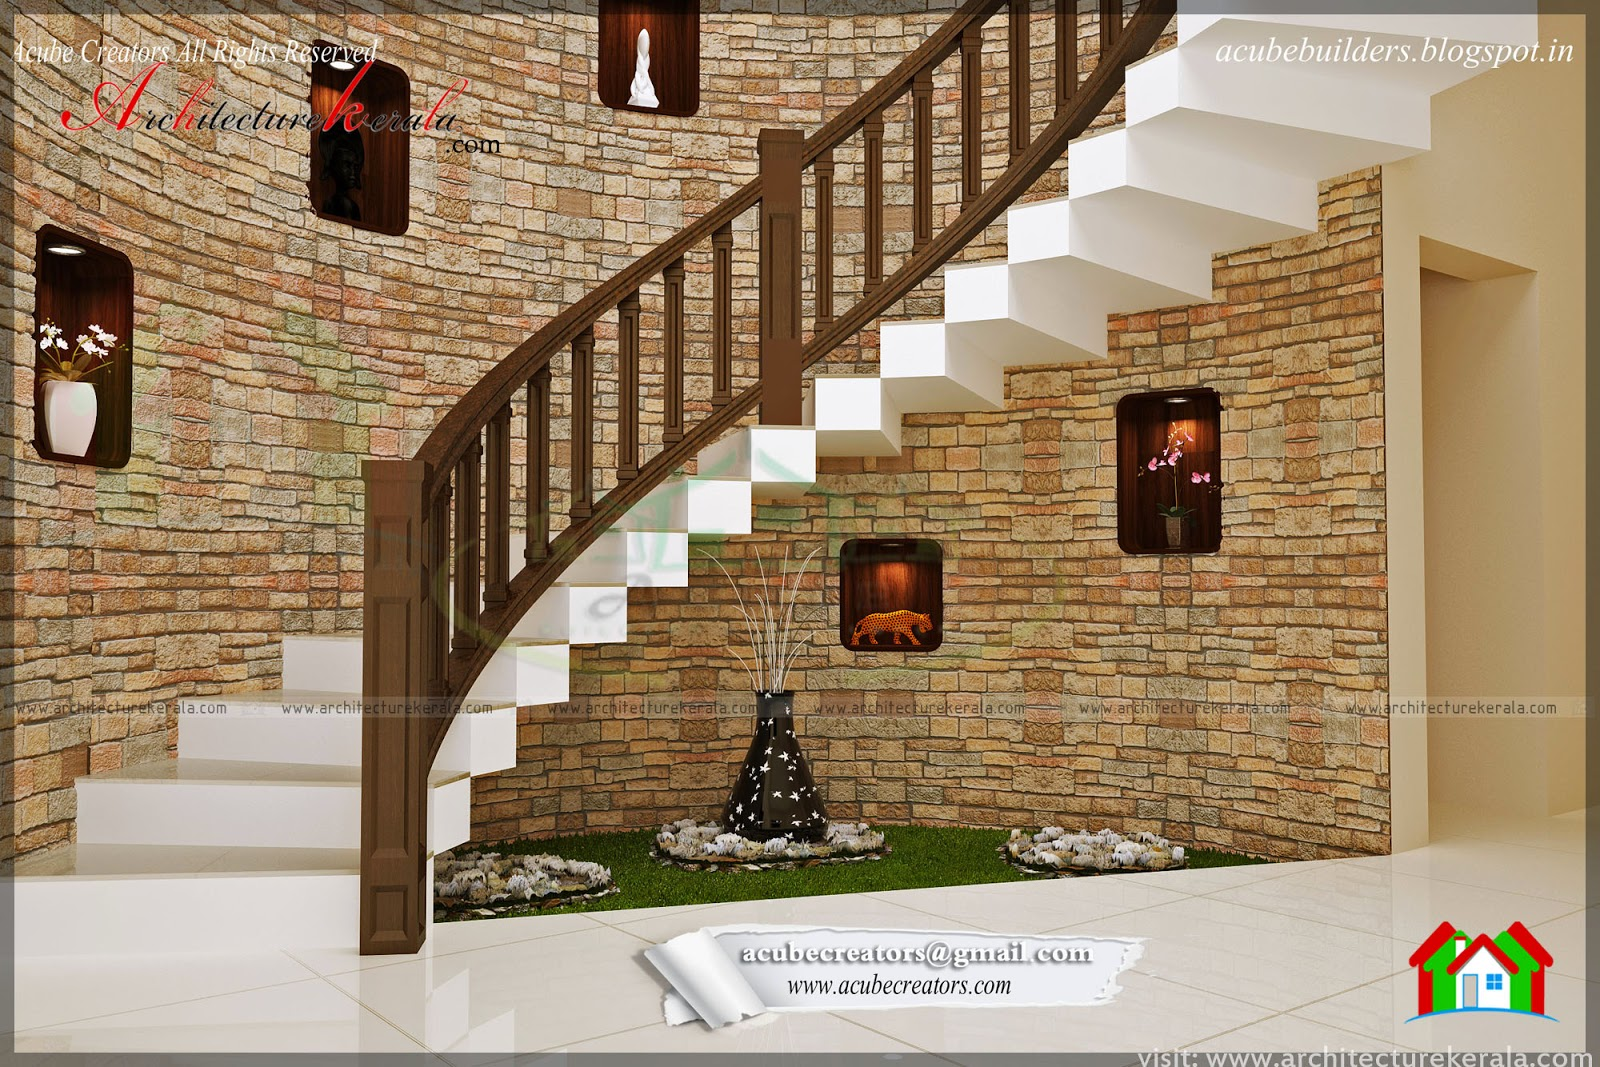 Beautiful stair interior design architecture kerala for Kerala model interior designs